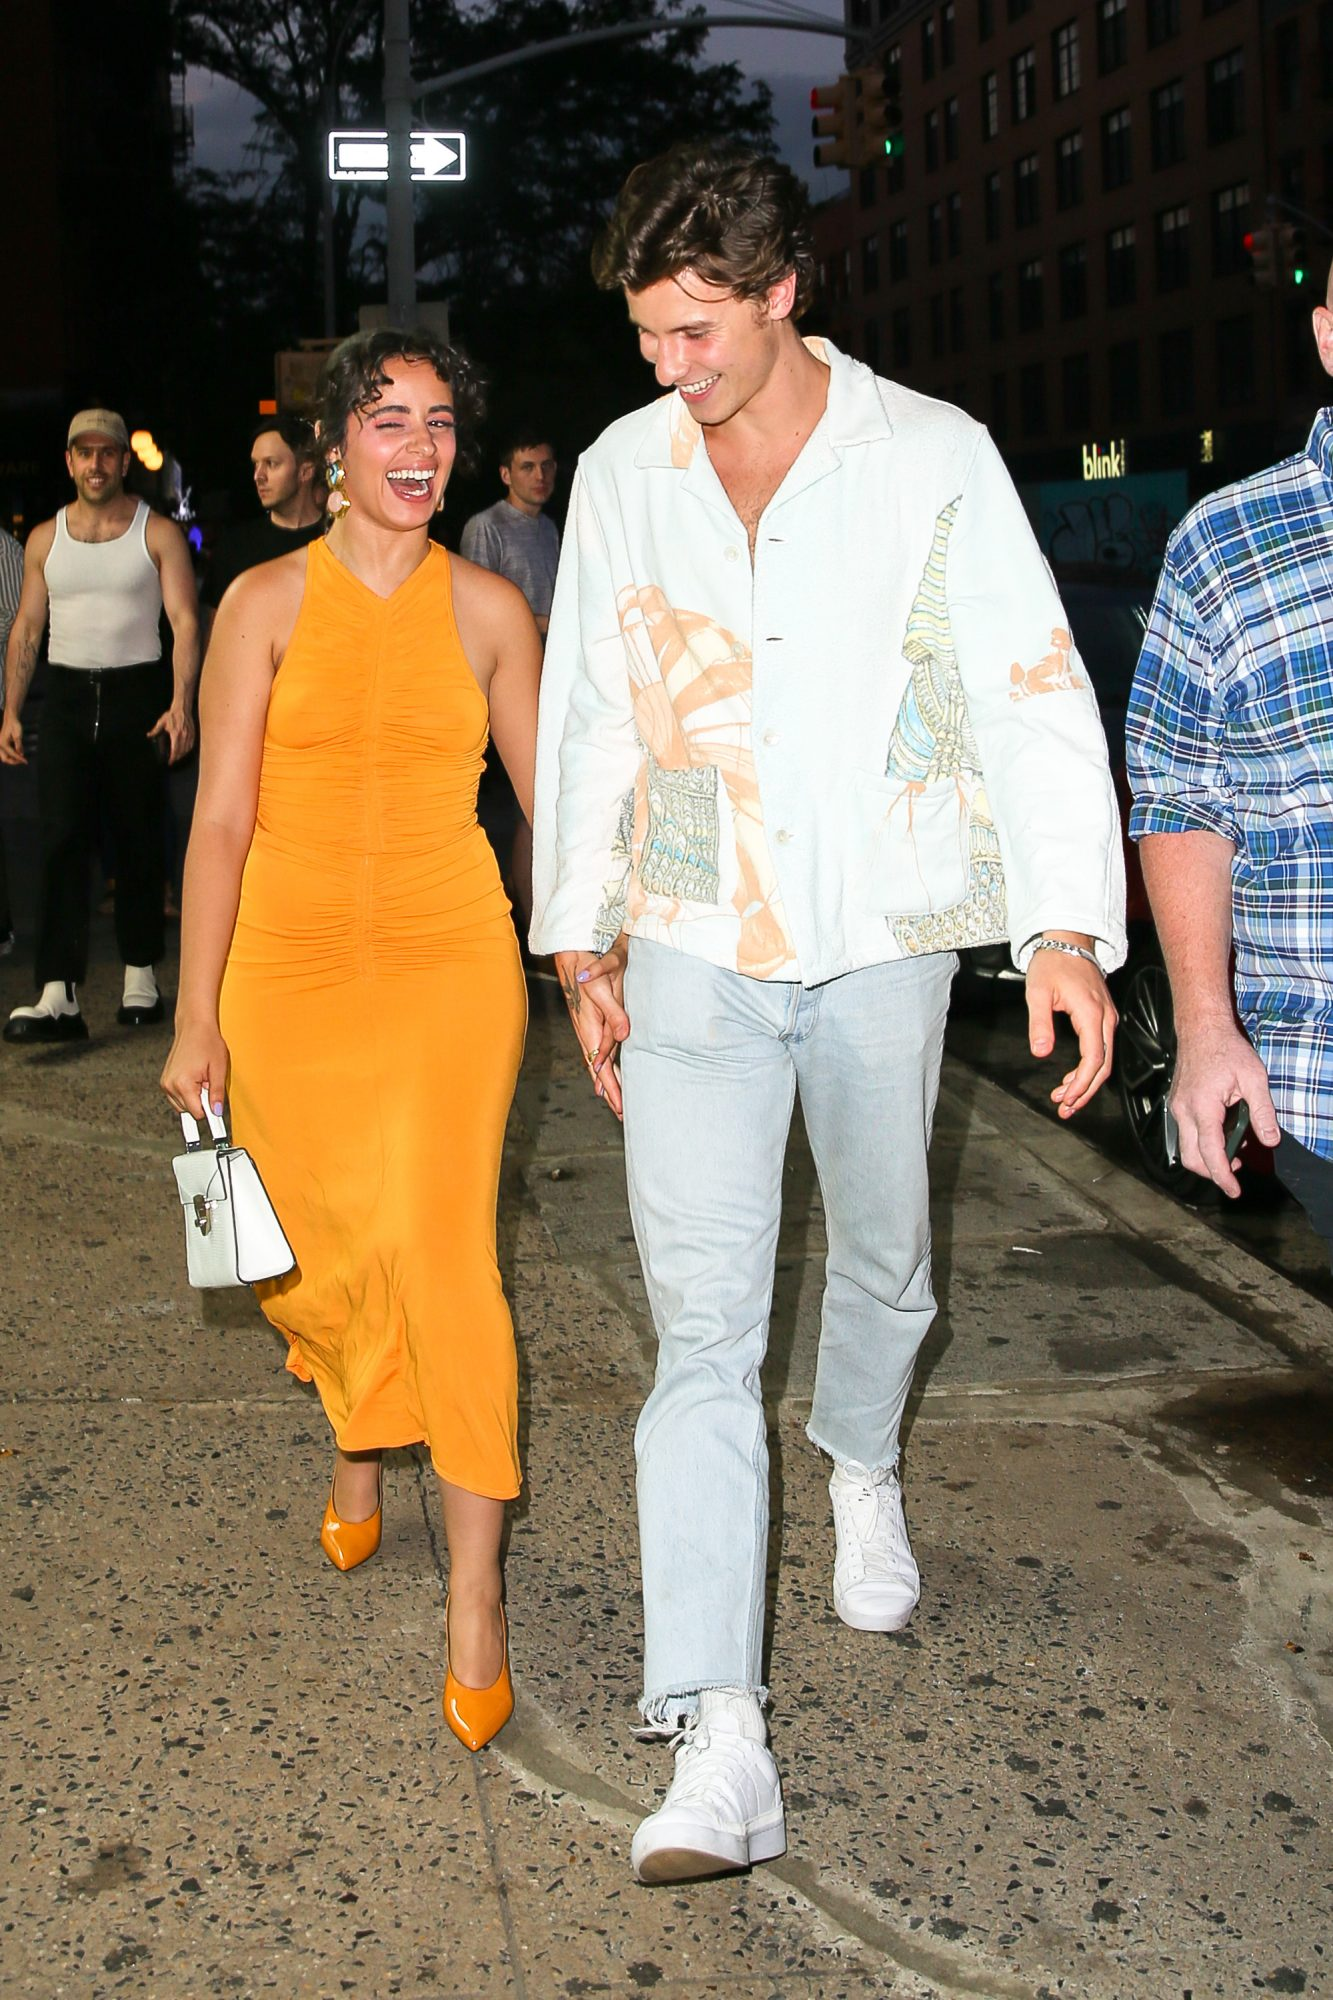 Camila Cabello And Shawn Mendes Are All Loved Up On Date Night After Her Appearance On Jimmy Fallon